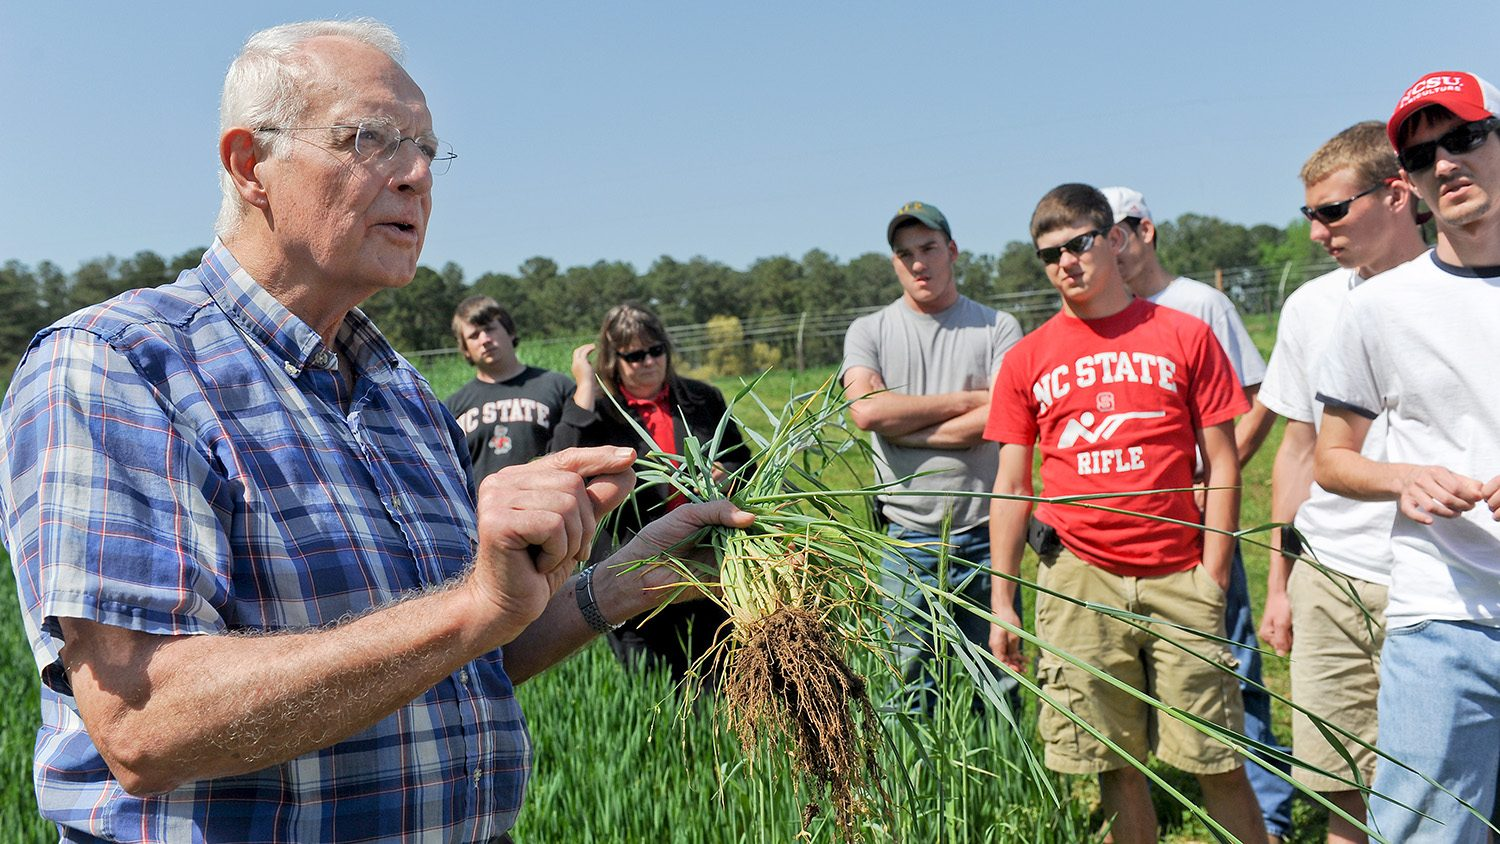 Bob Patterson with students outside in an agricultural field.